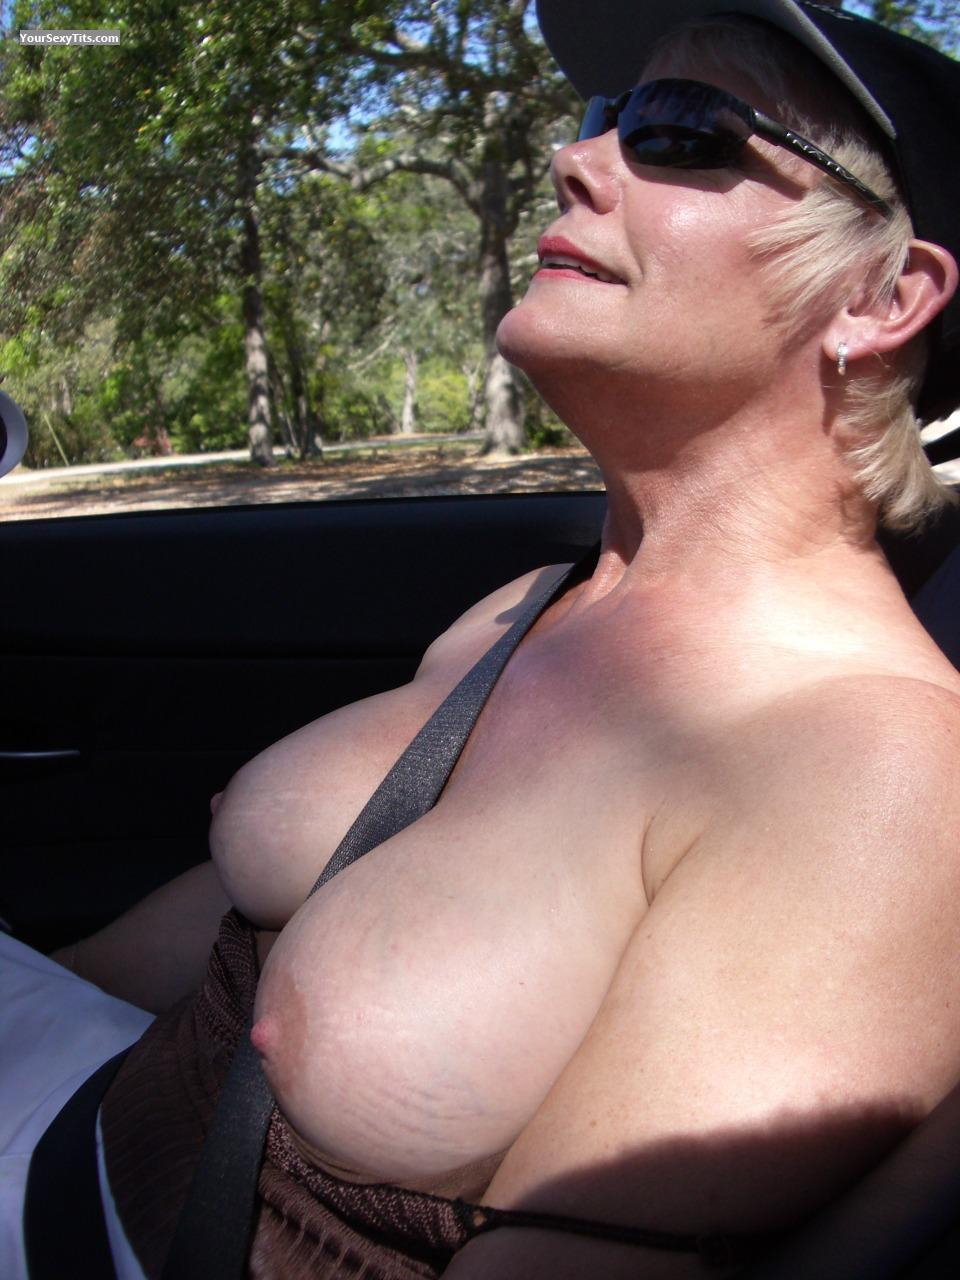 Tit Flash: Big Tits - Topless Redhotgrani from United States